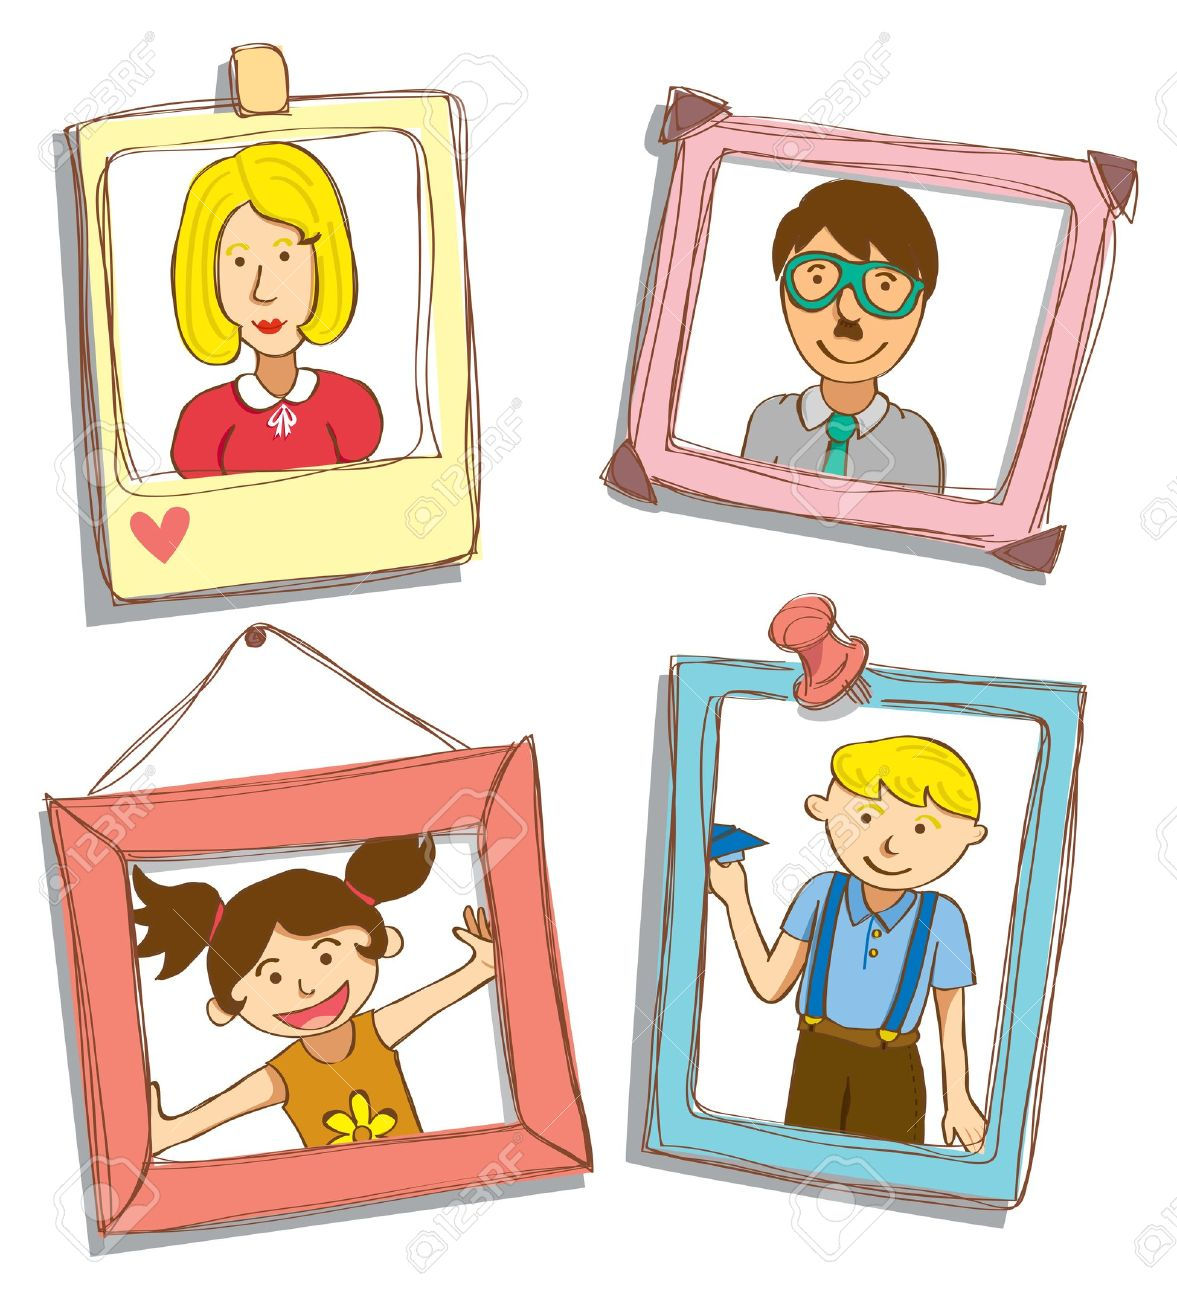 family portrait royalty free cliparts vectors and stock rh 123rf com photo clipart of the wise men photo clip art apps